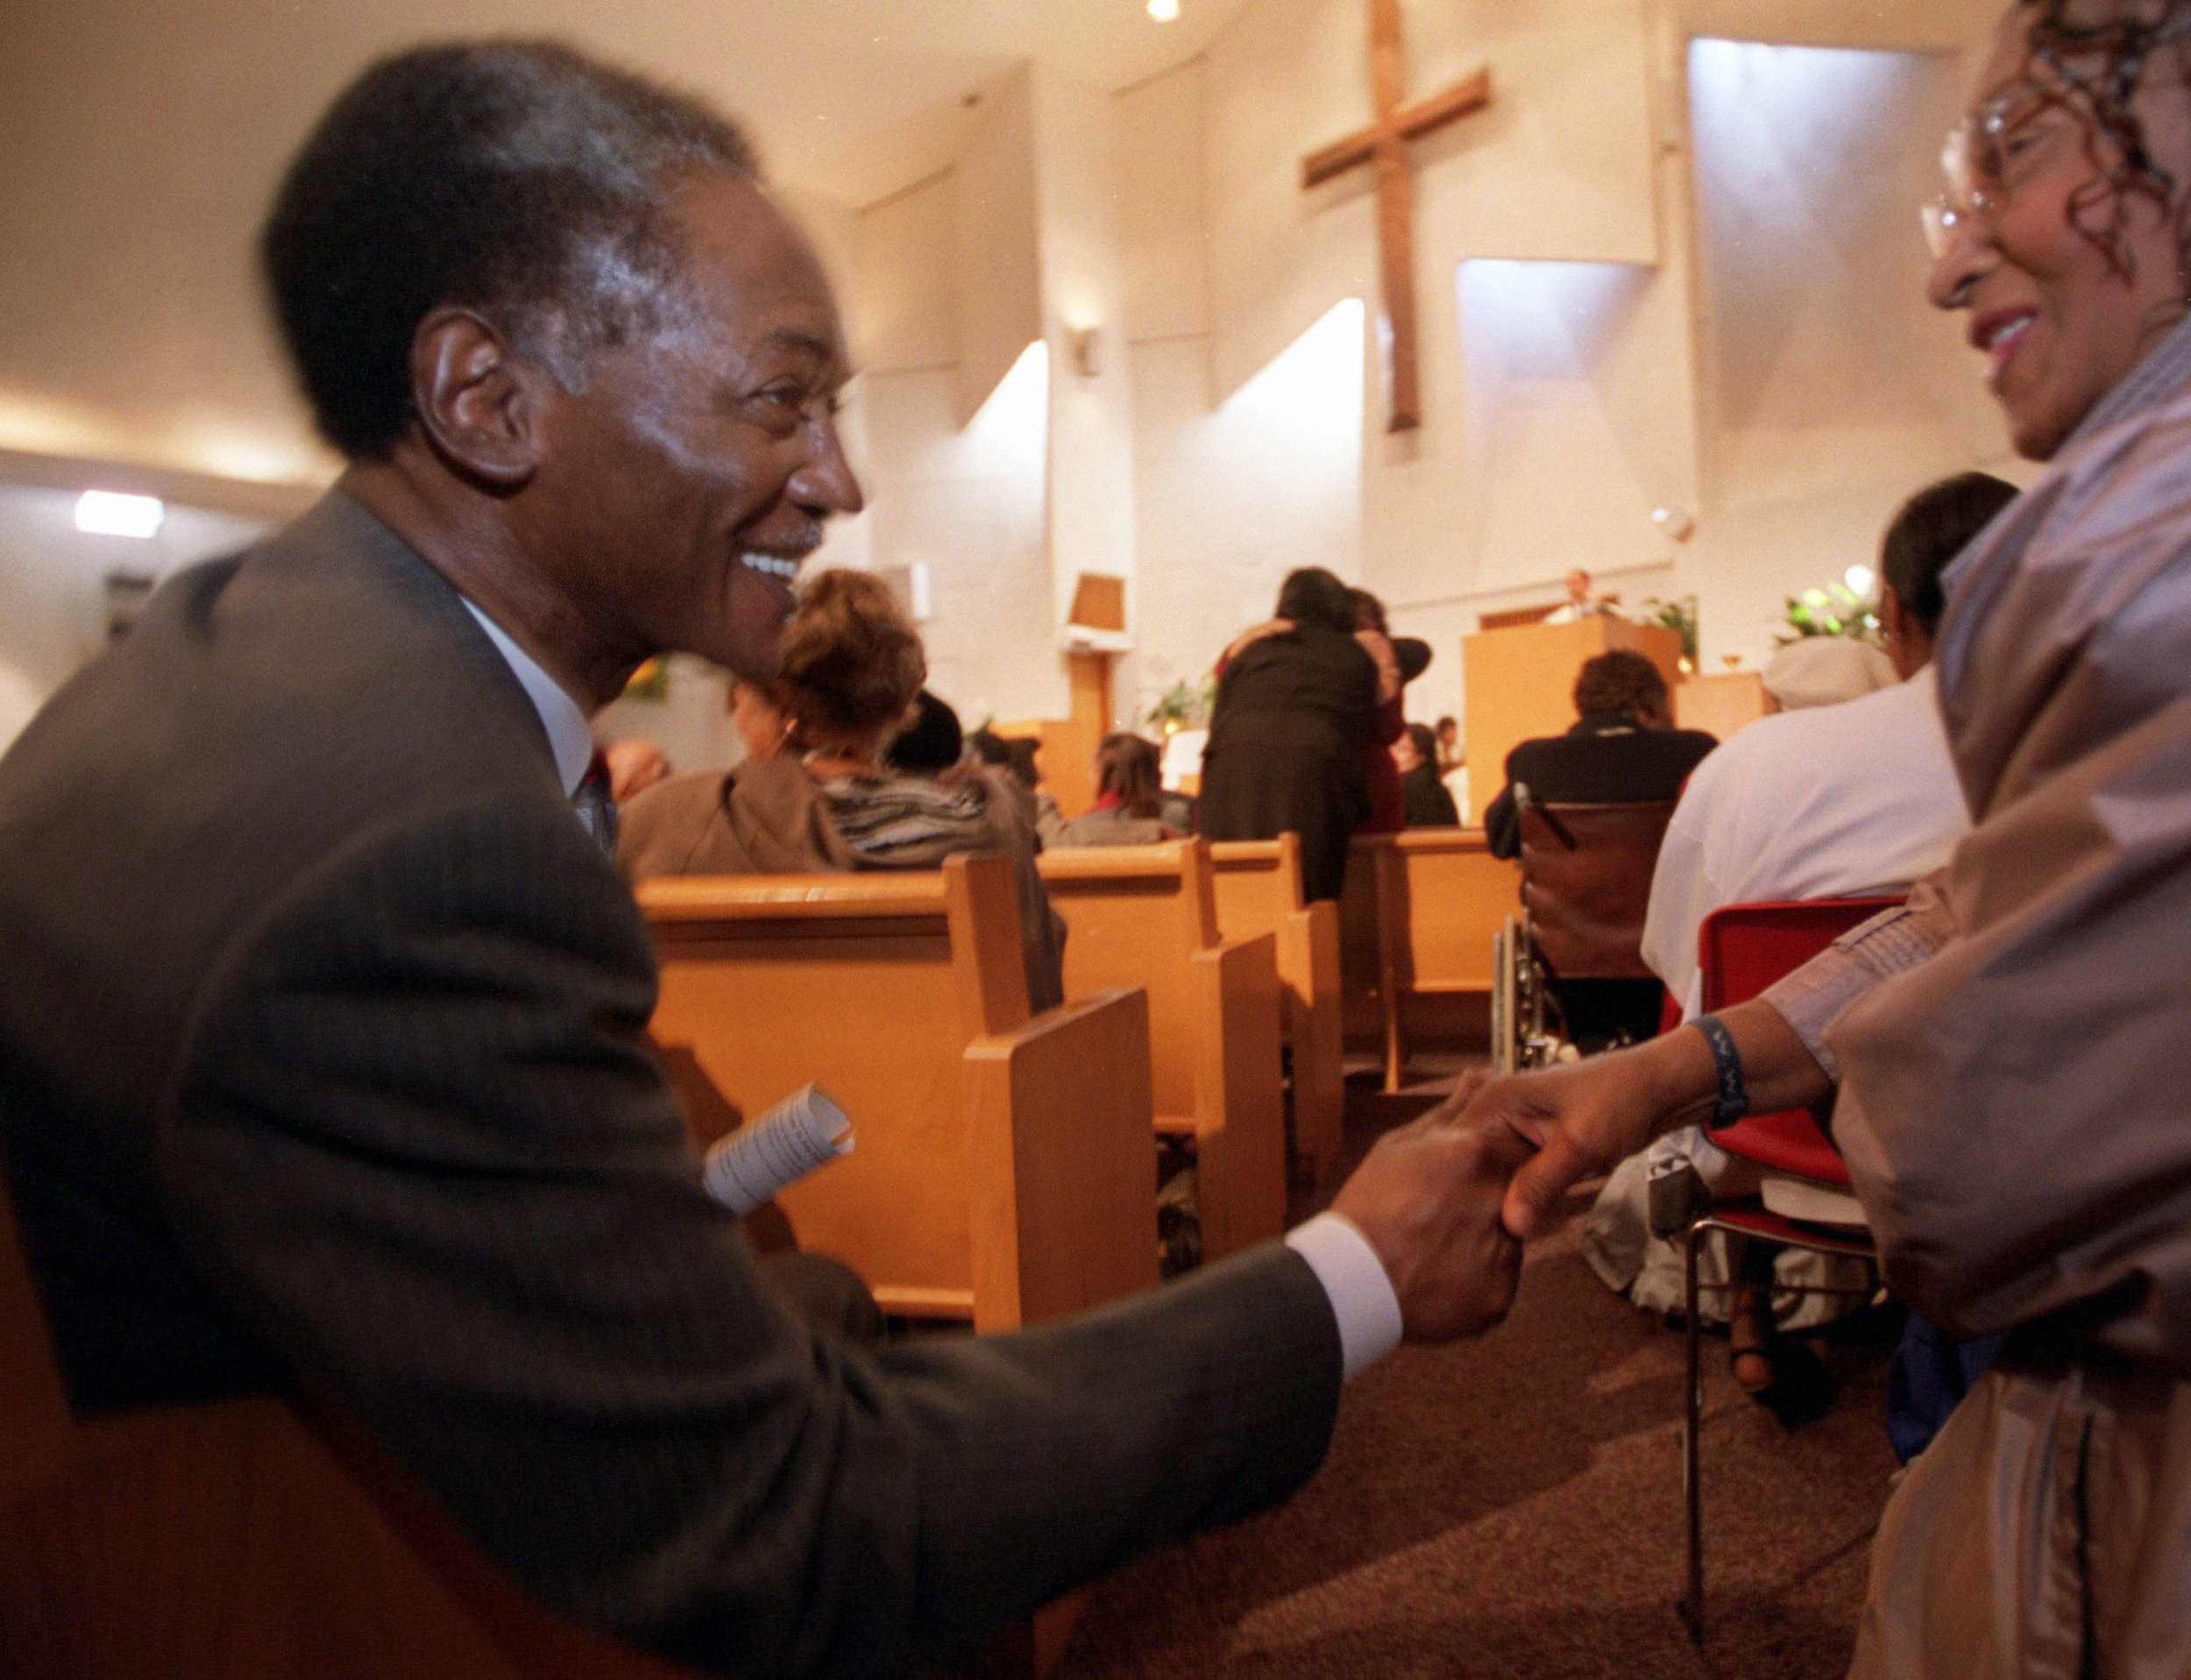 Gil Hill shakes hands with a congregation member at Plymouth Congregational Church in Detroit on Sunday, November 4, 2001 two days before the general election.  Courtesy of the Detroit Free Press.